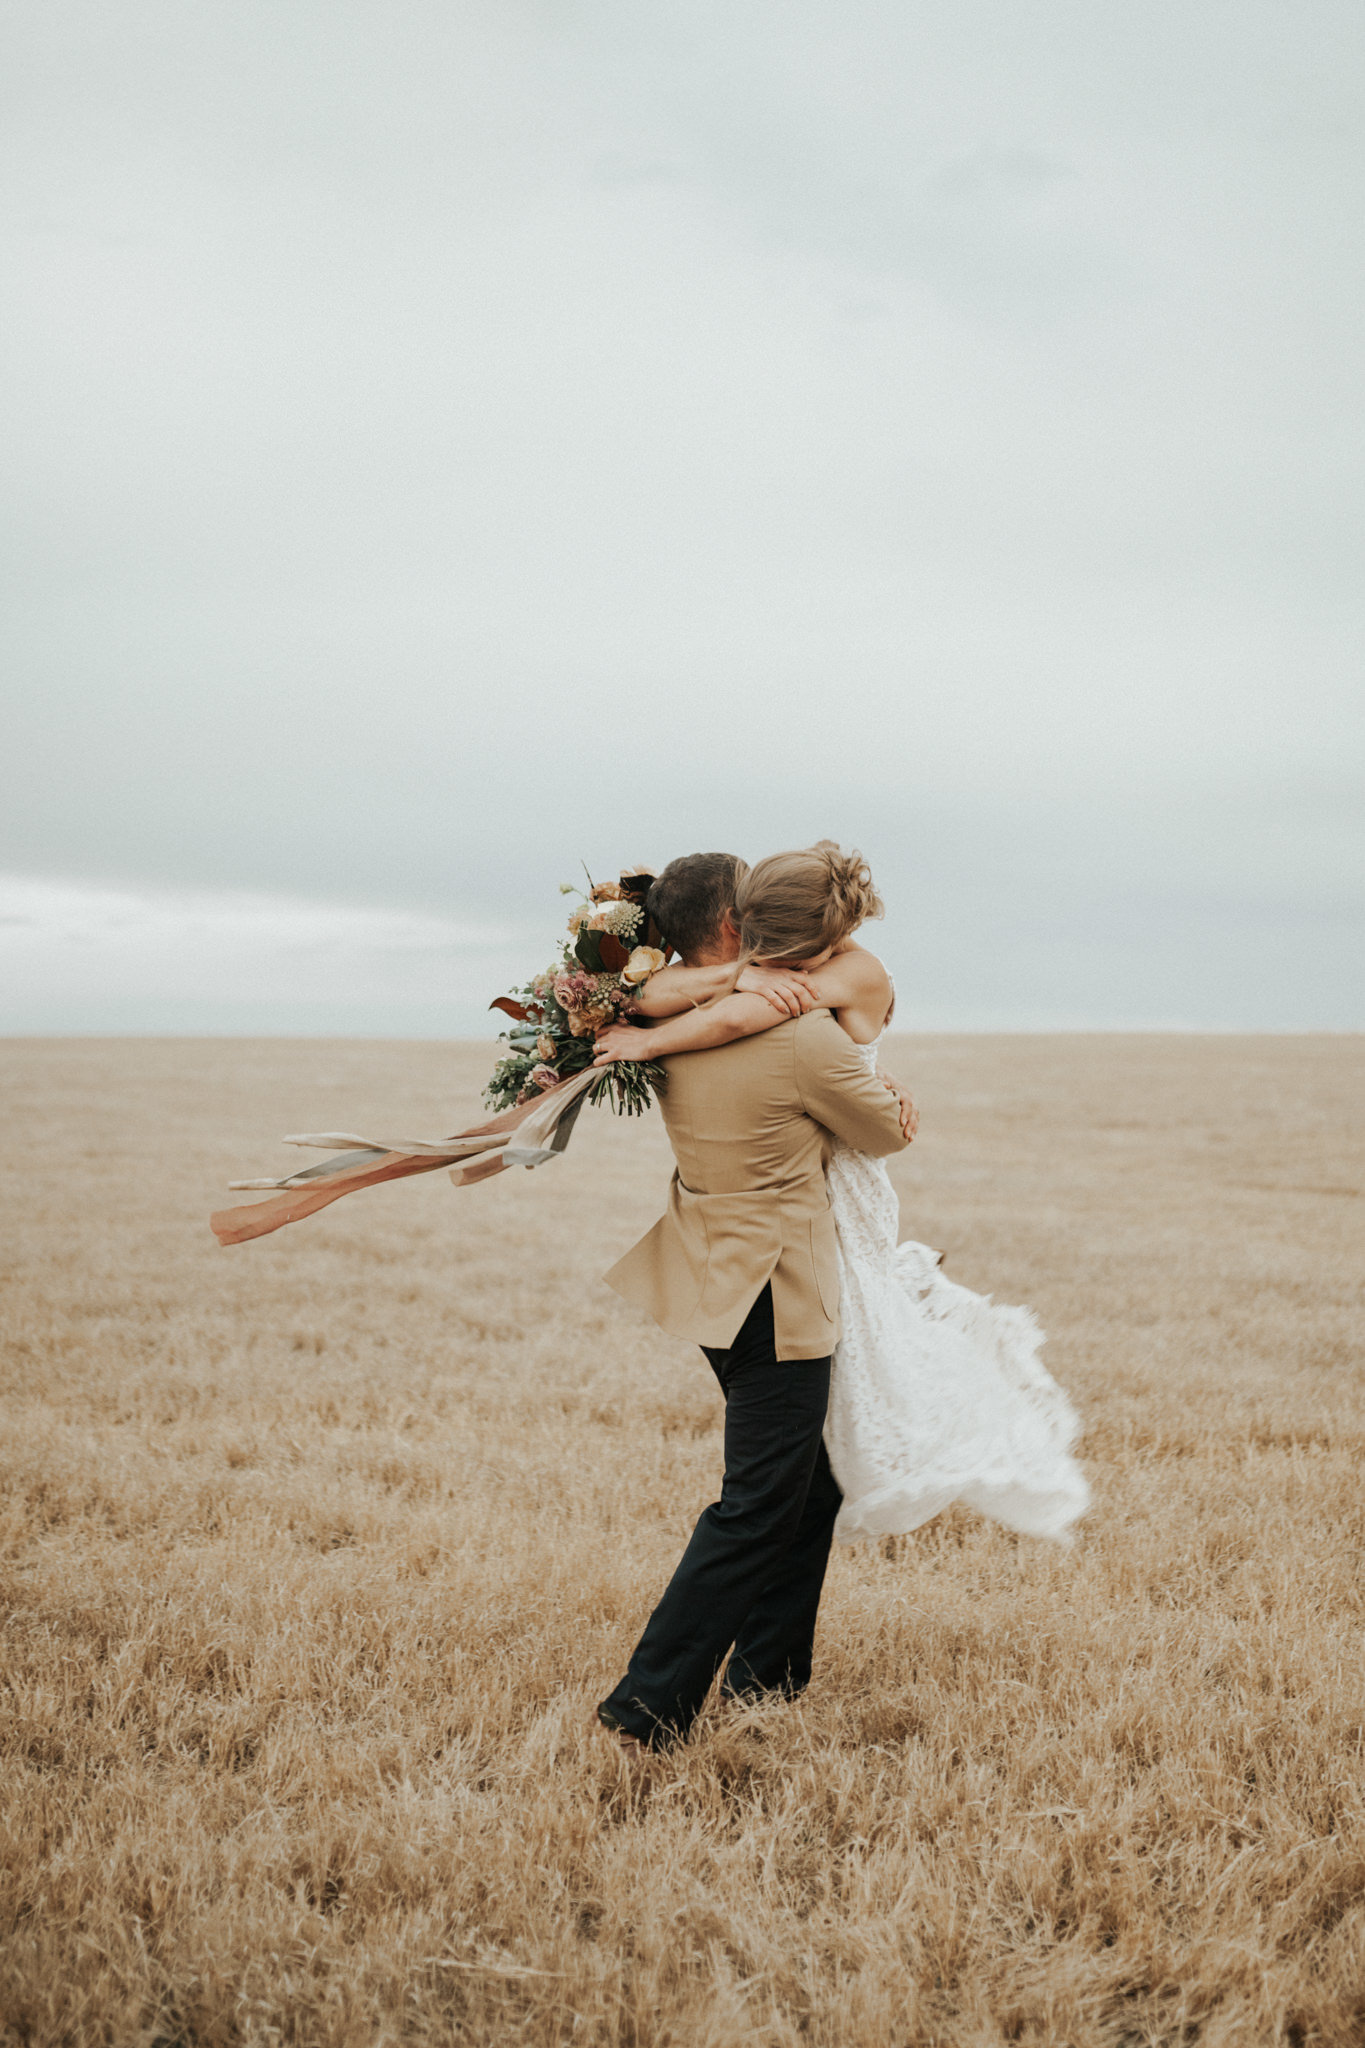 A bride and groom photo in an open field at sunset.